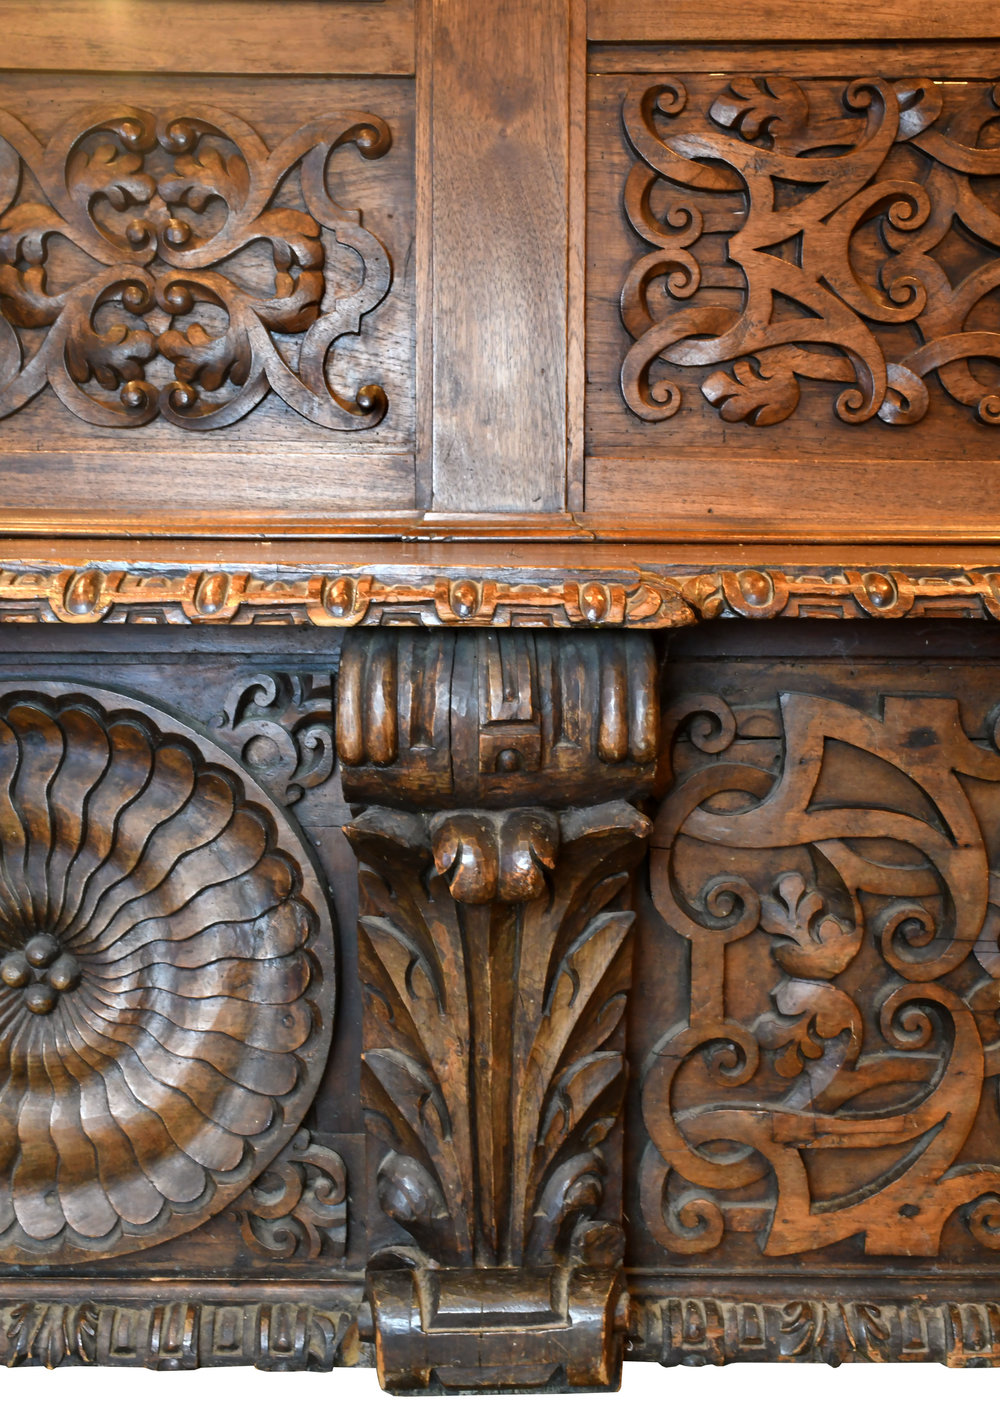 47368-carved-wooden-bench-detailed-patterns.jpg